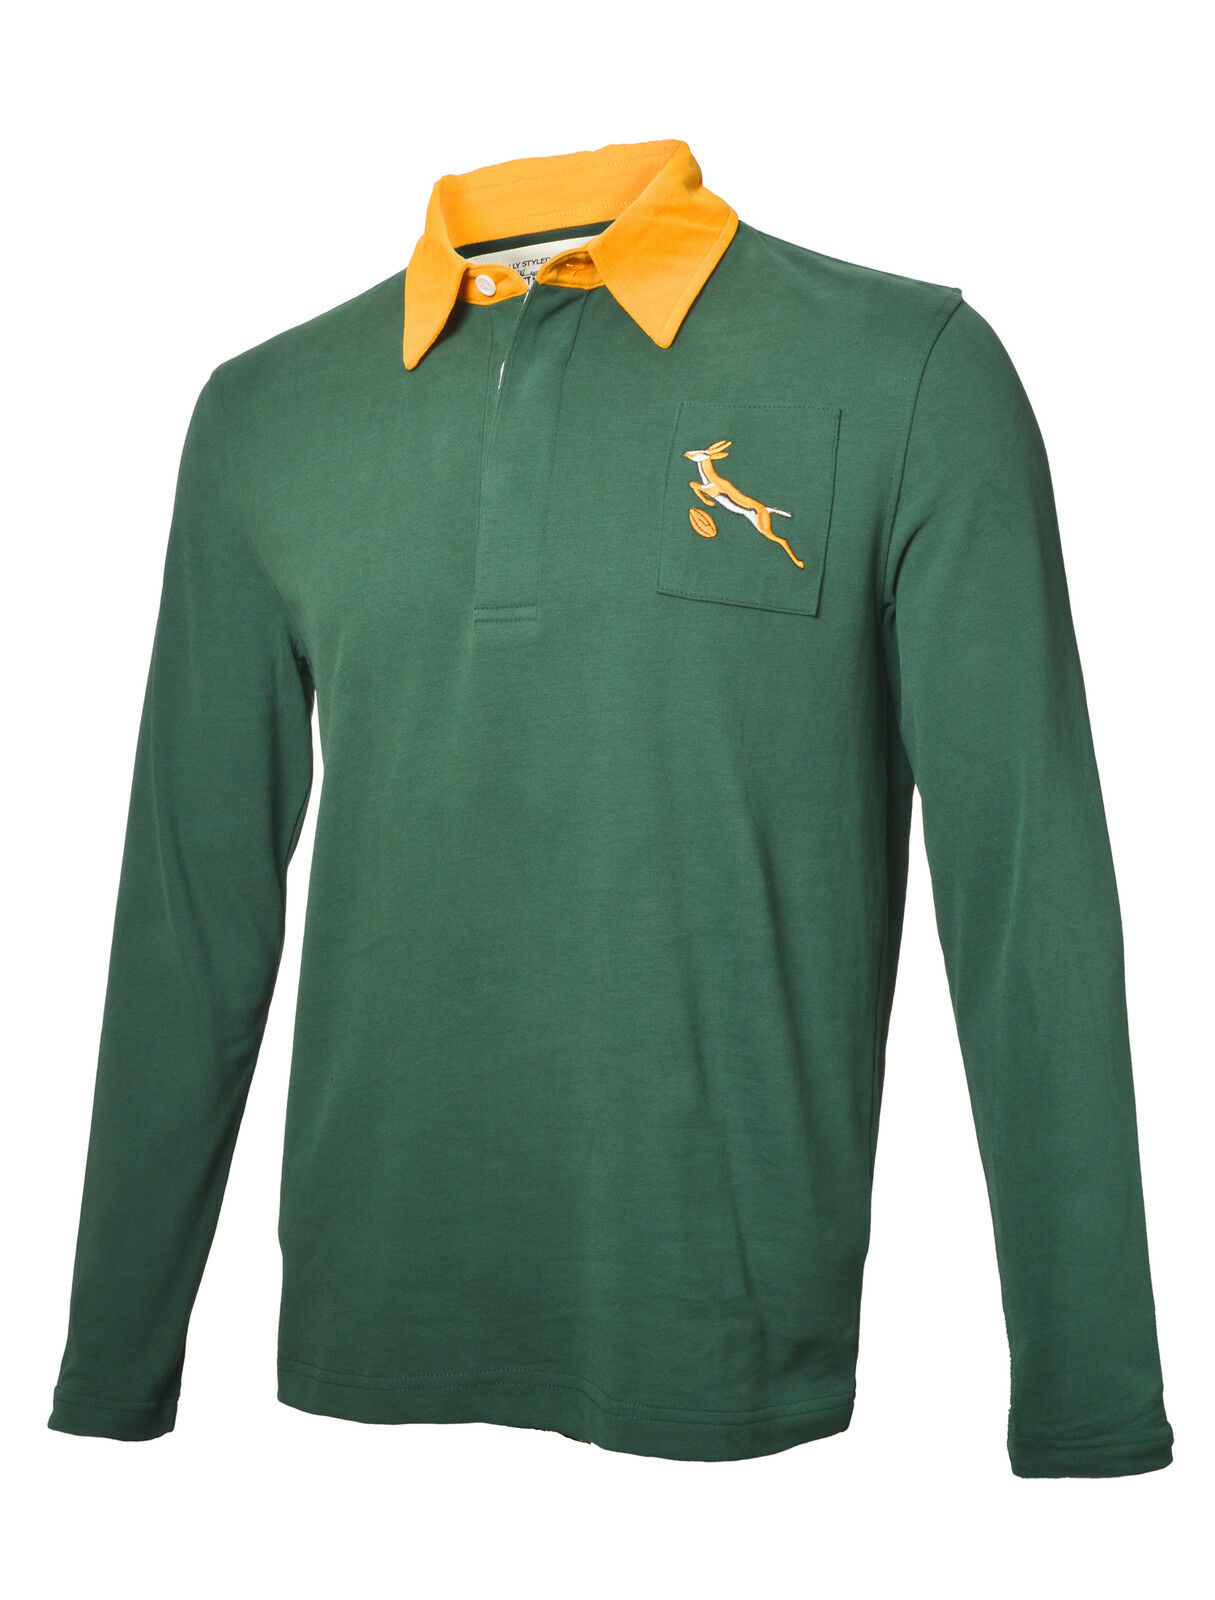 Olorun Authentic Rugby Classic Vintage SAfrica Shirt (S-4XL)